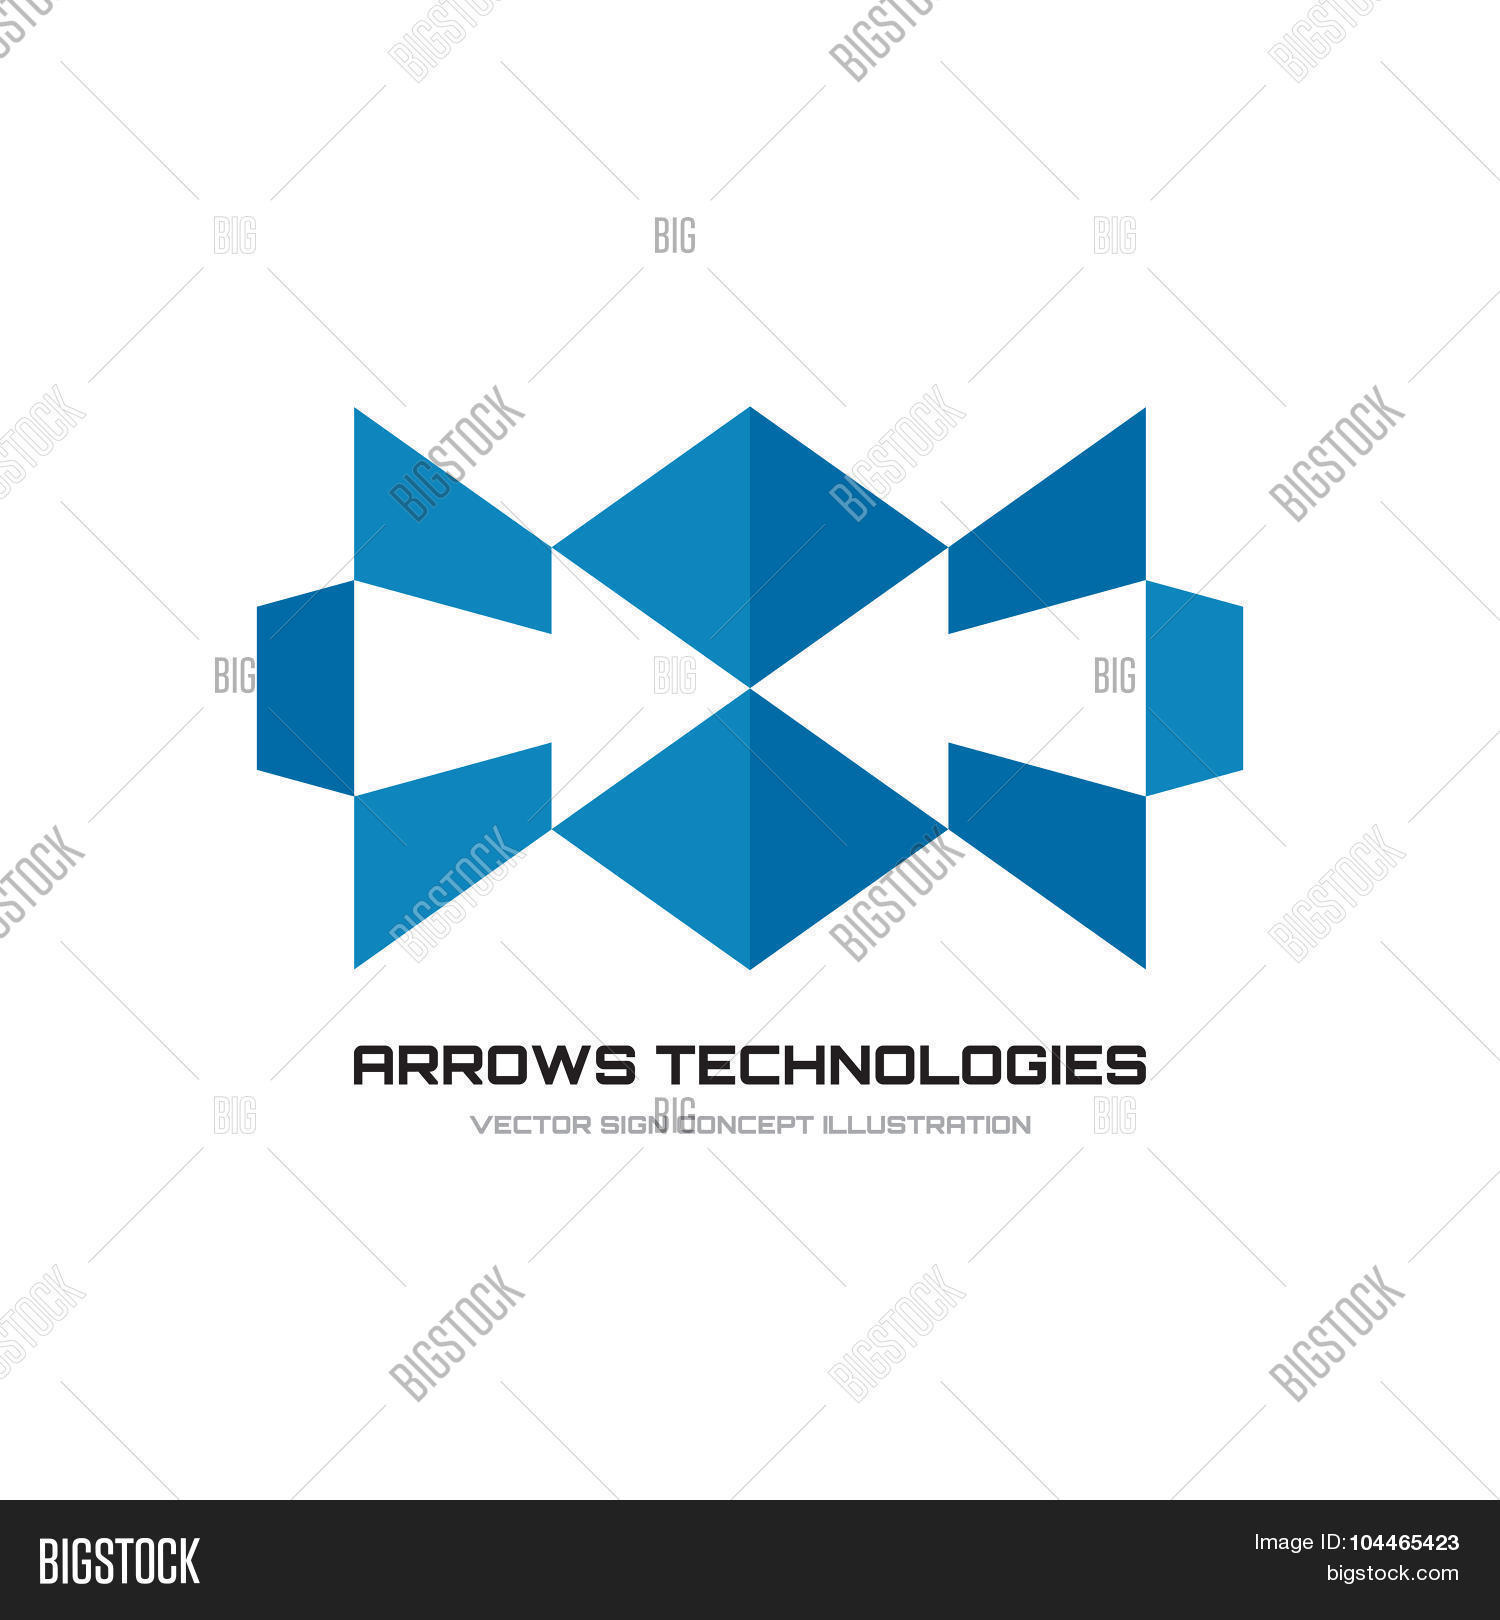 Arrows technologies - vector logo concept illustration. Abstract shapes logo. Geometric arrows logo.